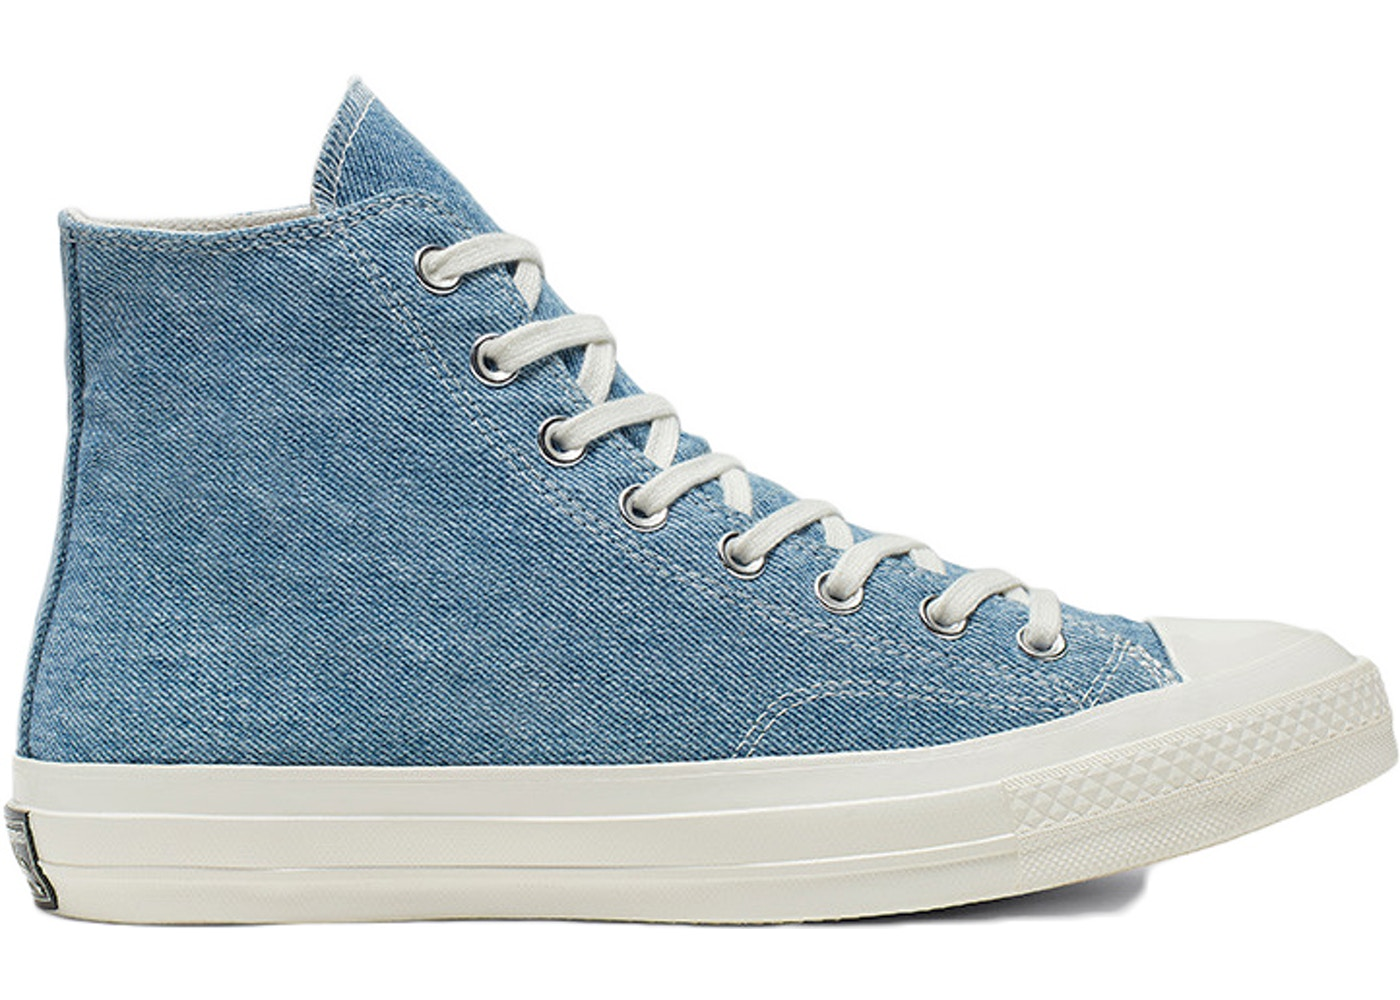 precio competitivo estilo máximo precio competitivo Converse Chuck Taylor All-Star 70s Hi Renew Light Denim - 165648C